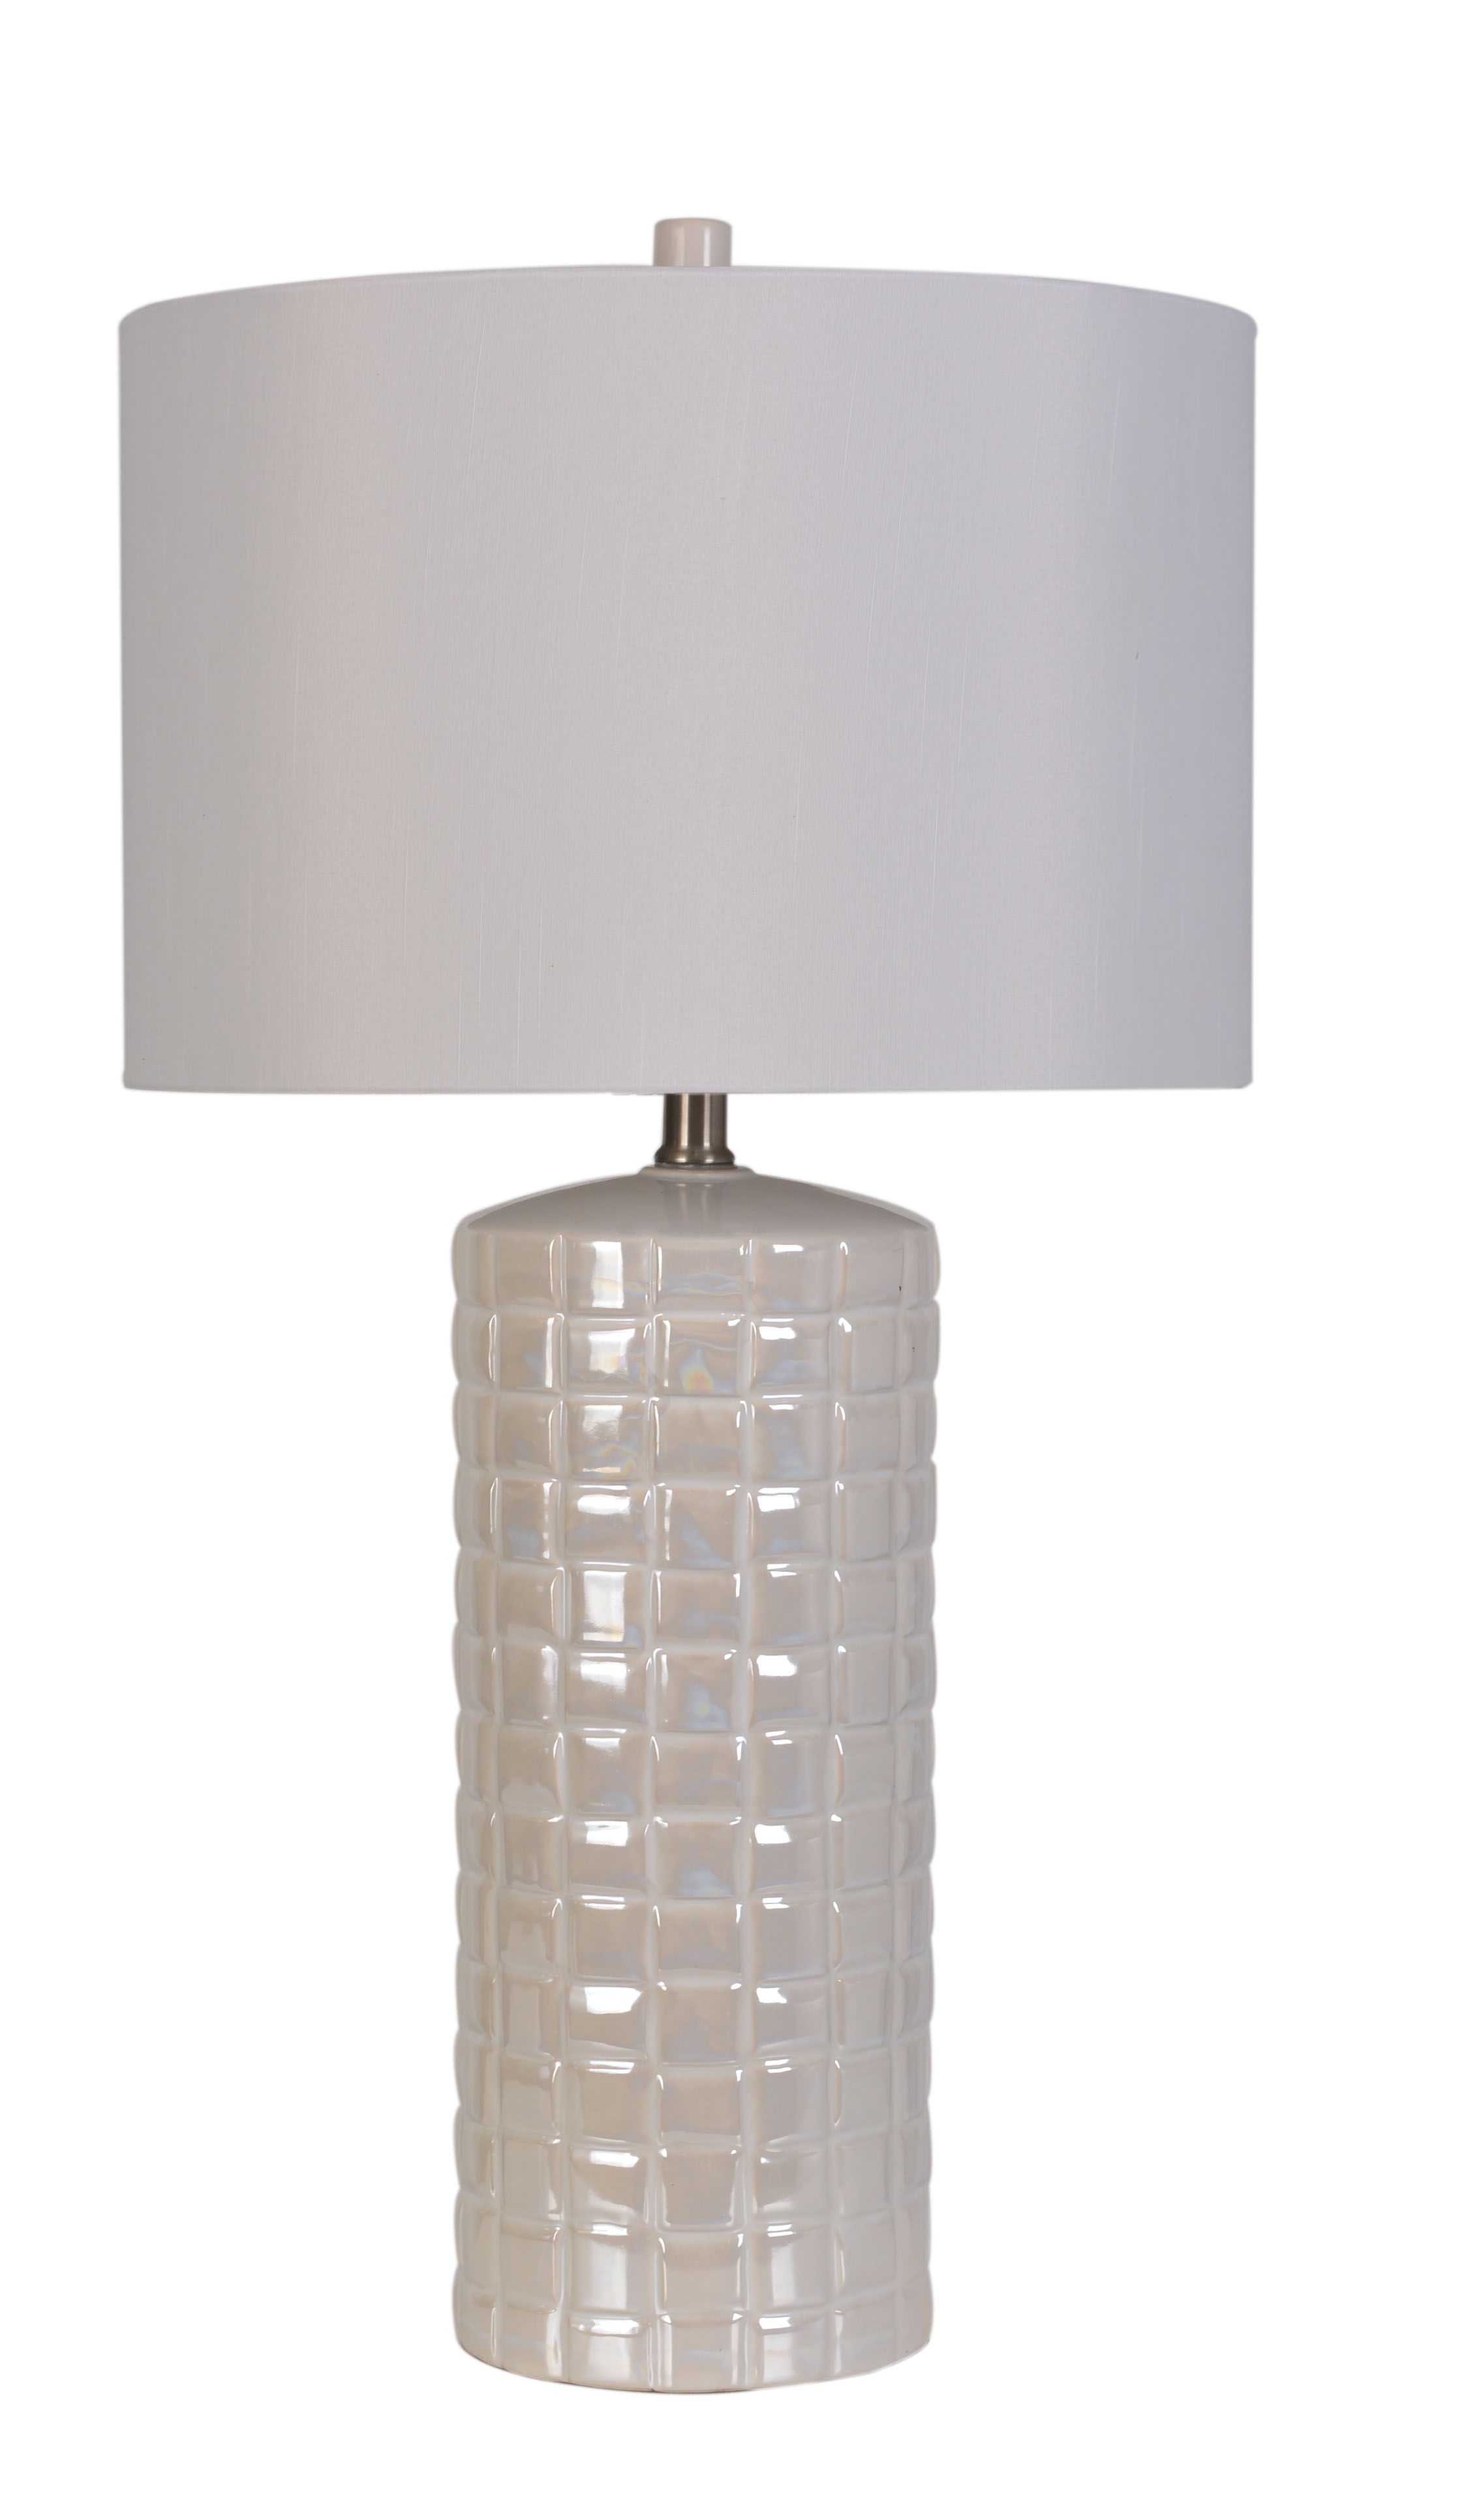 Lps 159 Ceramic Table Lamp With Cream Pearl Glaze Finish By Lamps